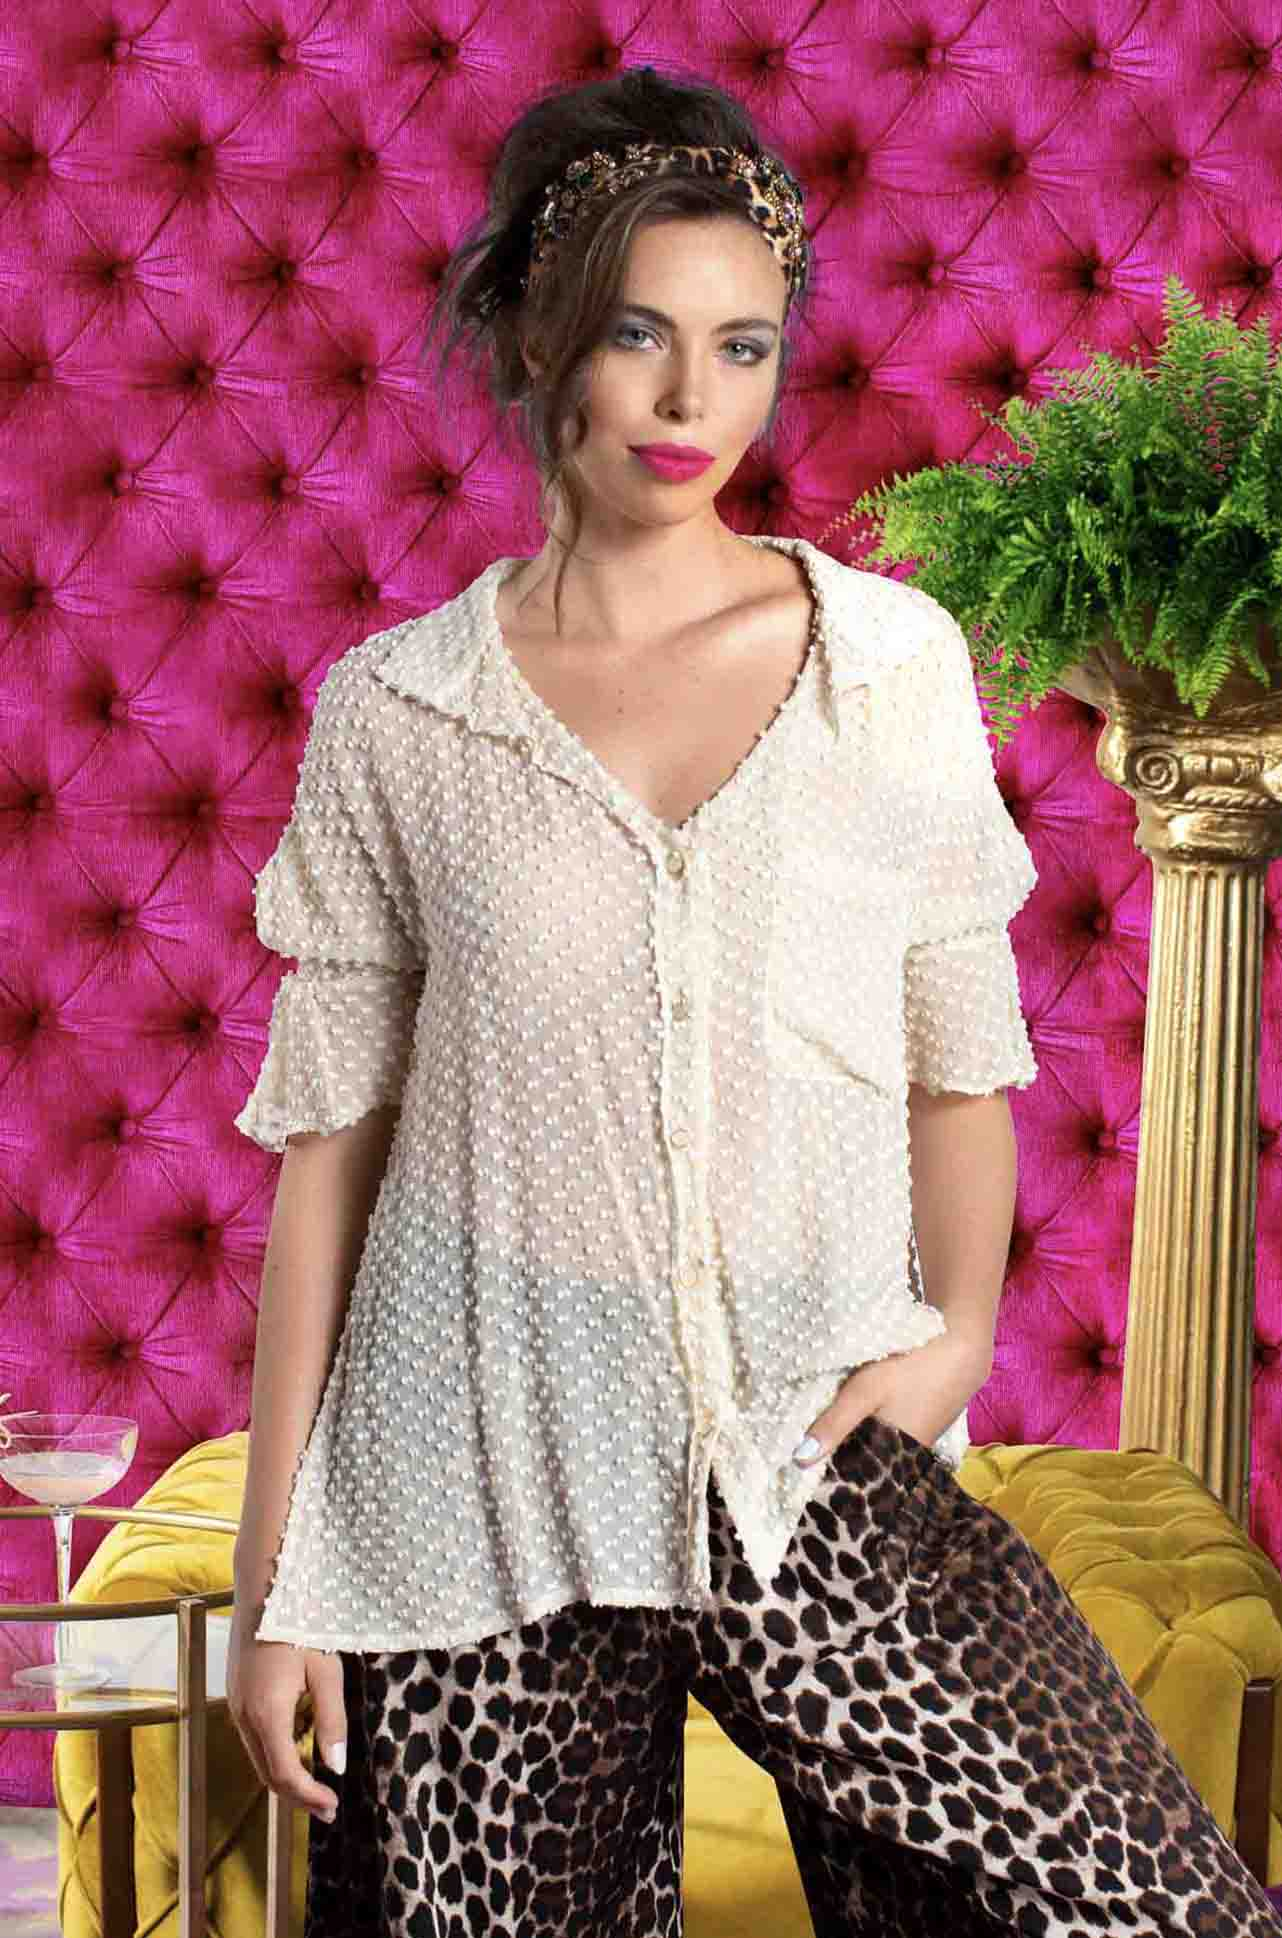 Trelise_Cooper_Shirty_Talk_Top_Blouse_Shirt_Dob_You_In_Cream_www.zambezee.com.au